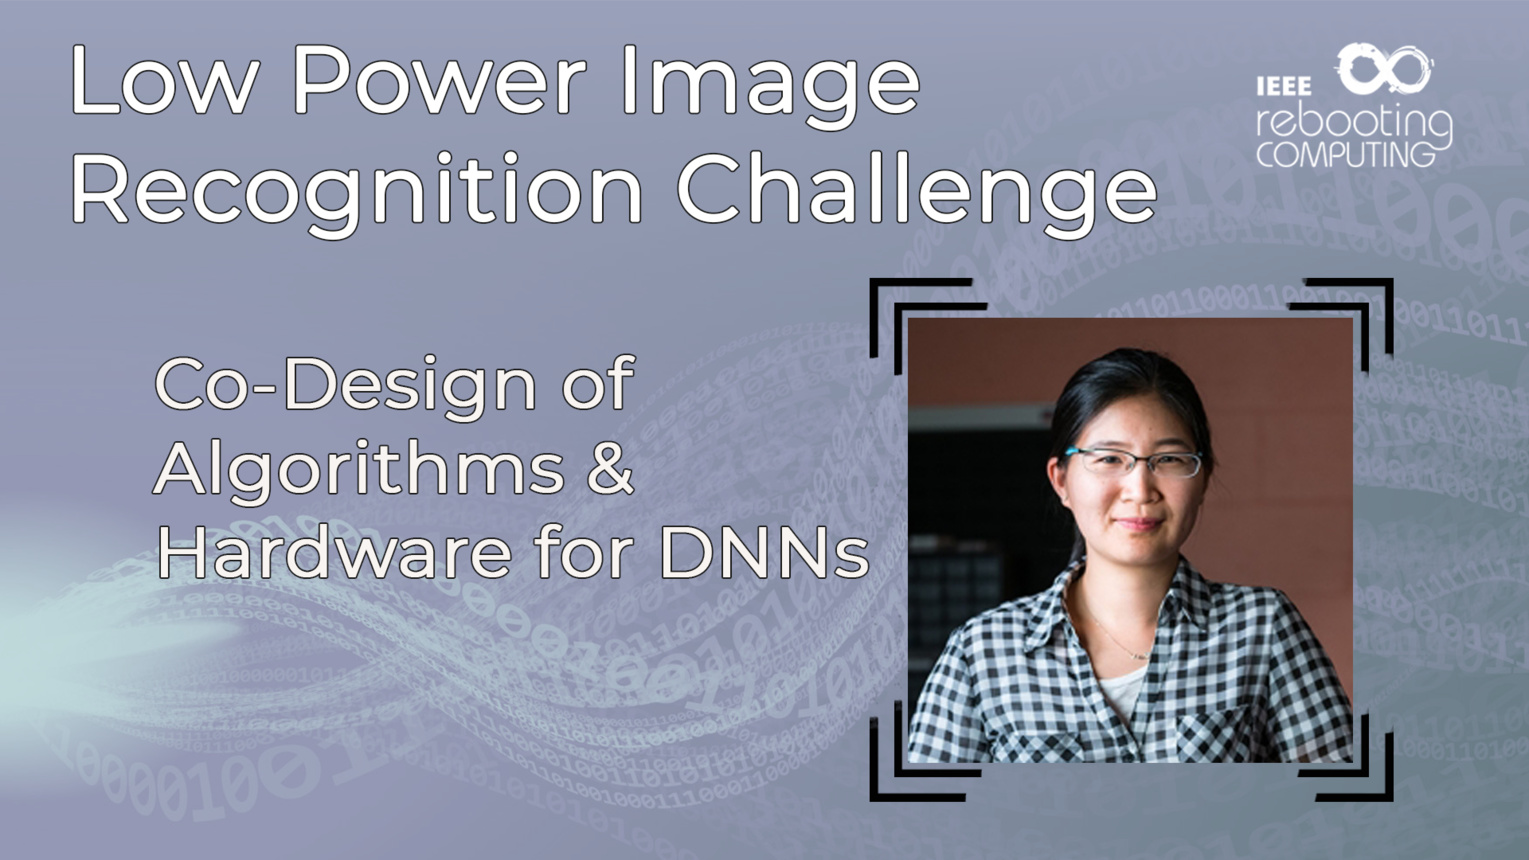 Co-Design of Algorithms & Hardware for DNNs - Vivienne Sze - LPIRC 2019